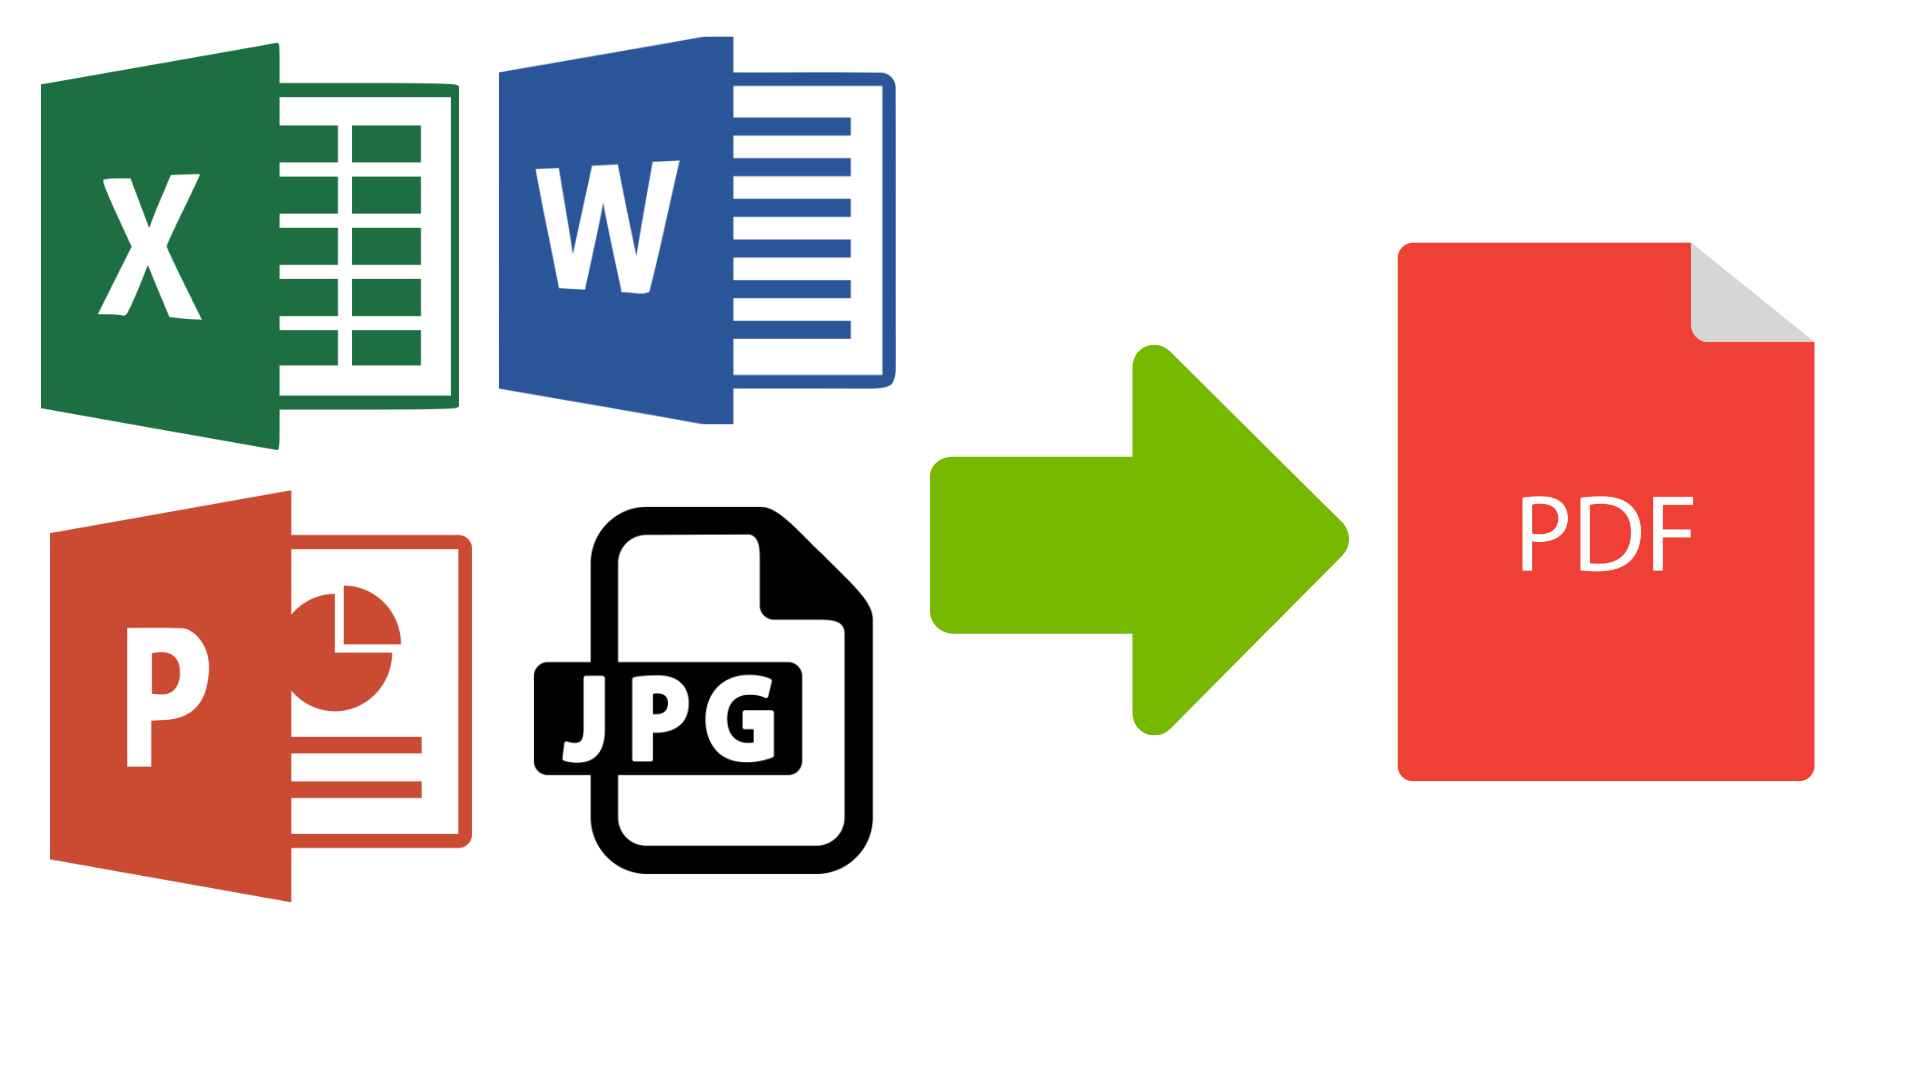 Convert word to PDF in 1 day for only 1 dollar